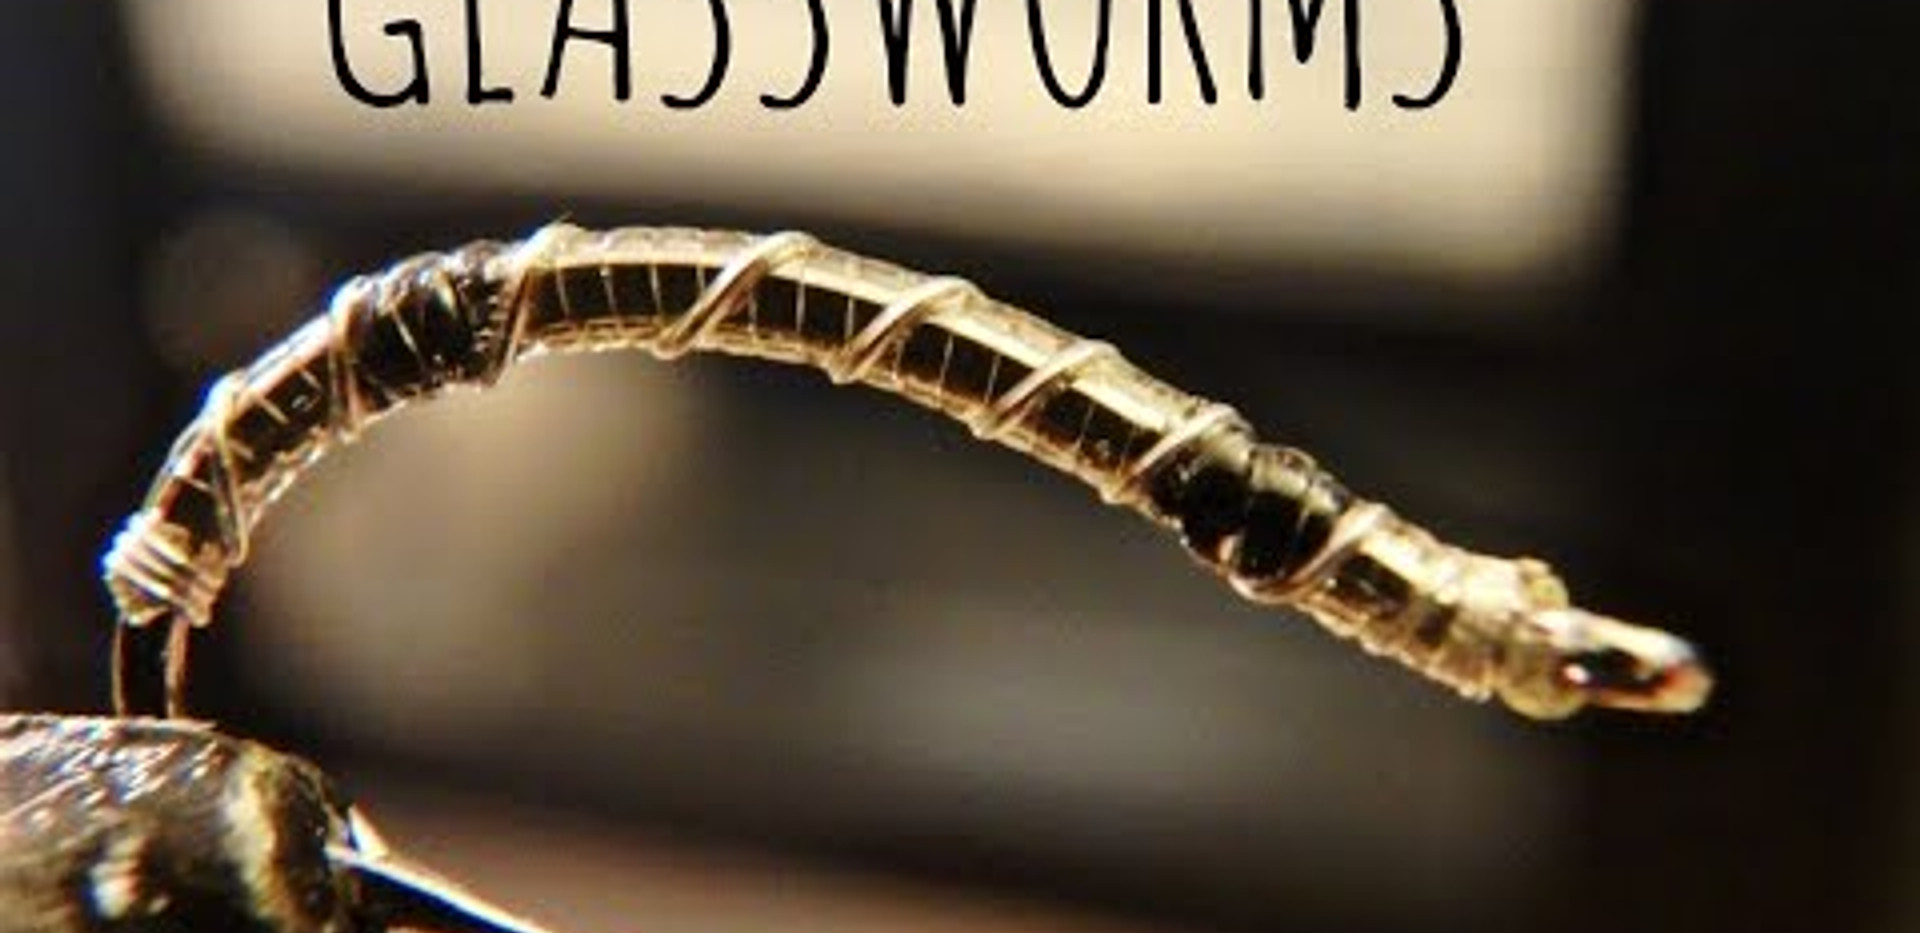 Glassworms